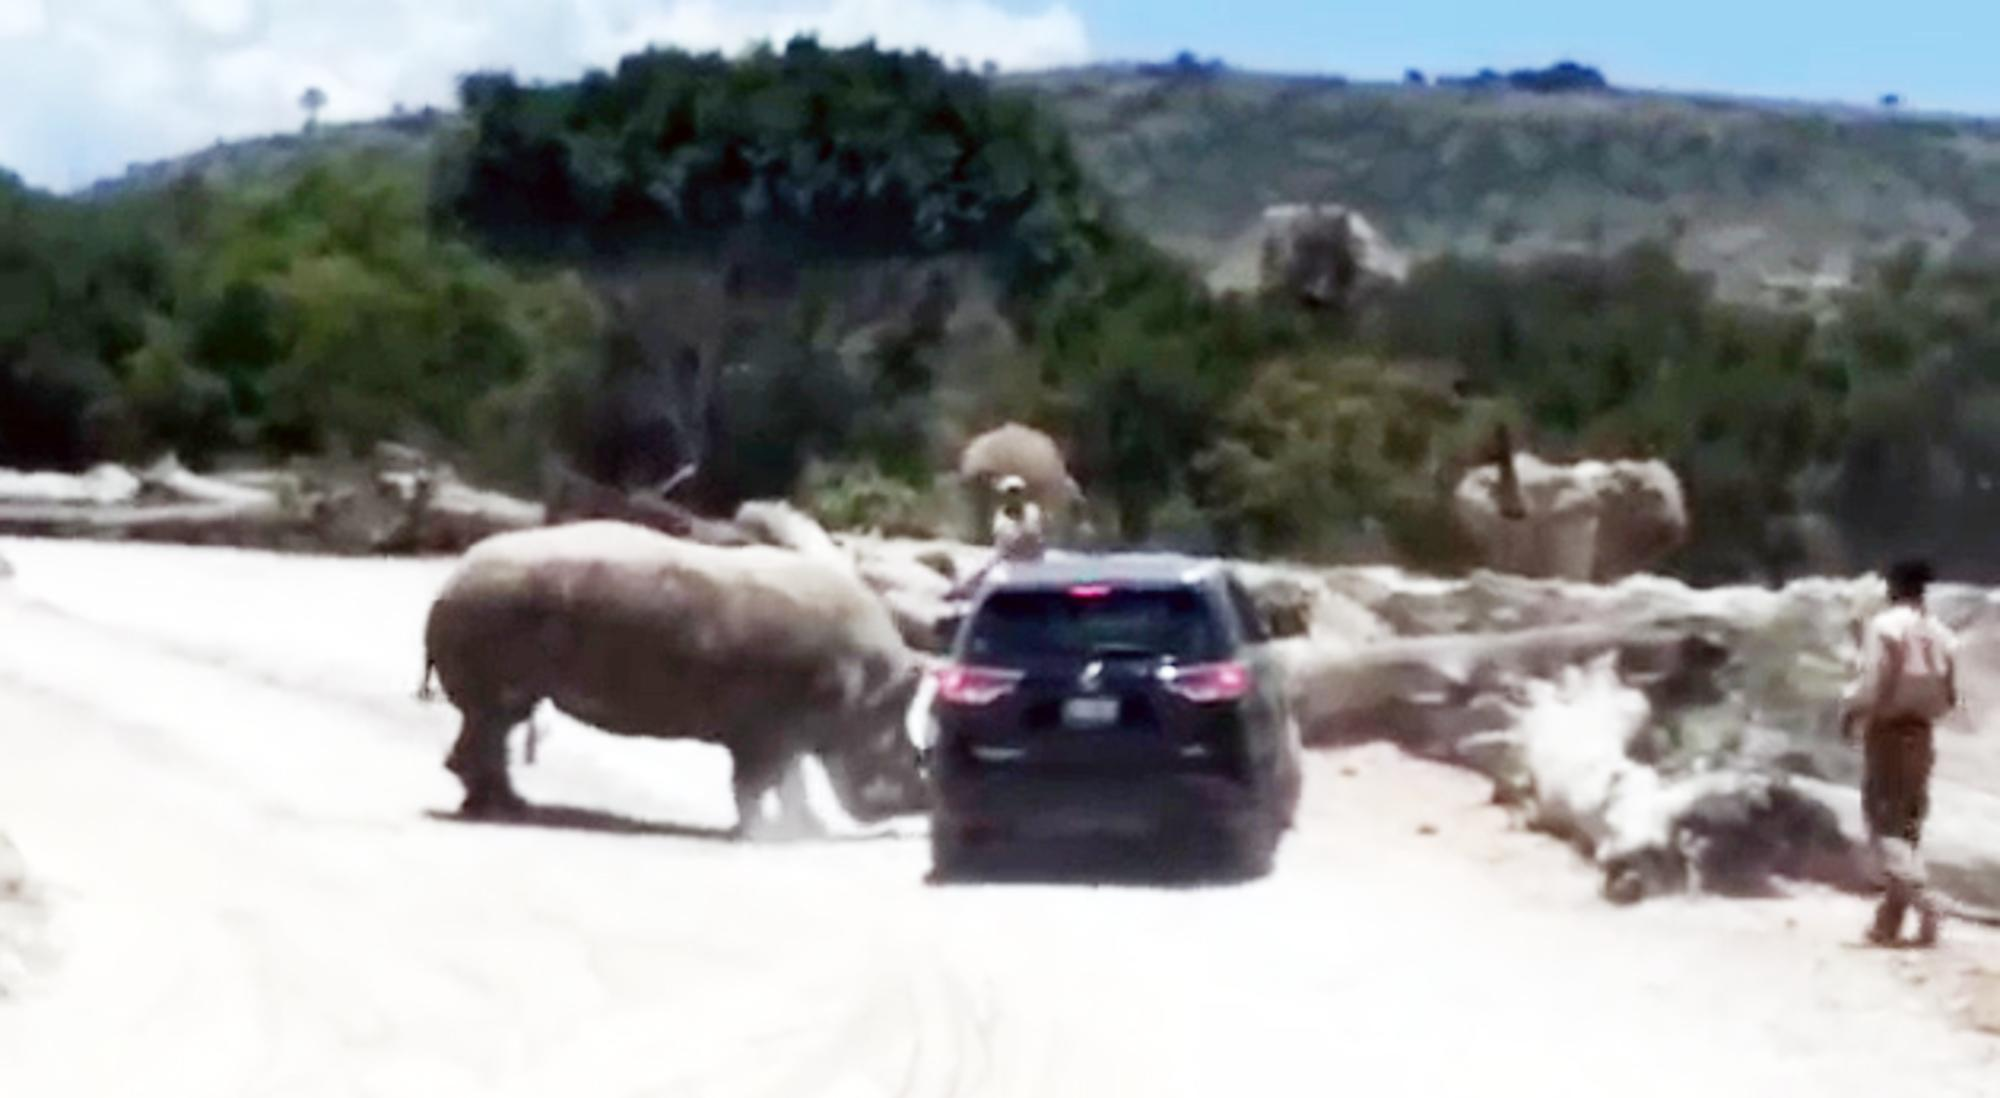 Rhino tries to overturn family SUV at Mexican safari park